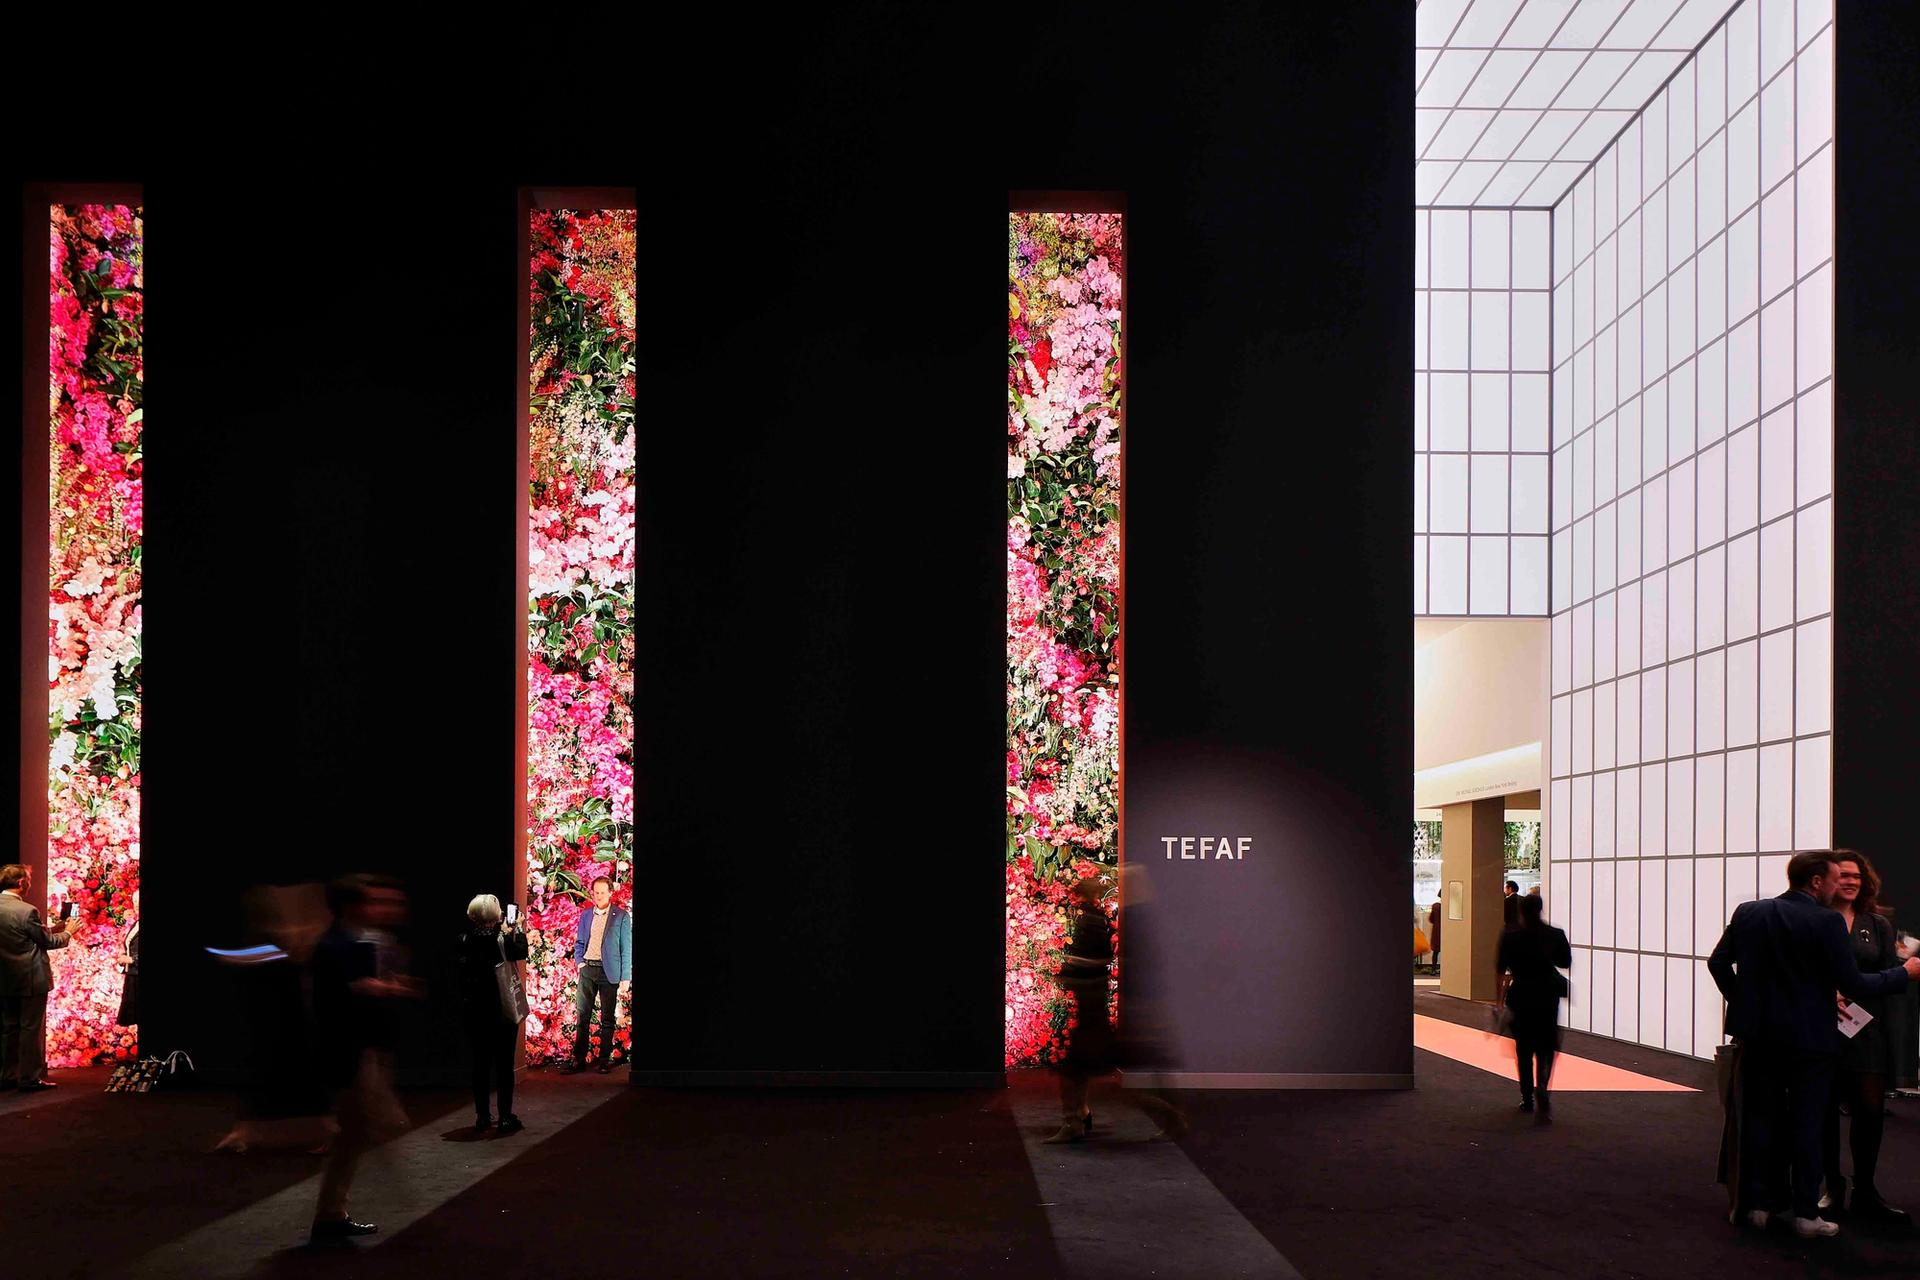 Tefaf Maastricht will move to early summer in 2021 Courtesy of Tefaf